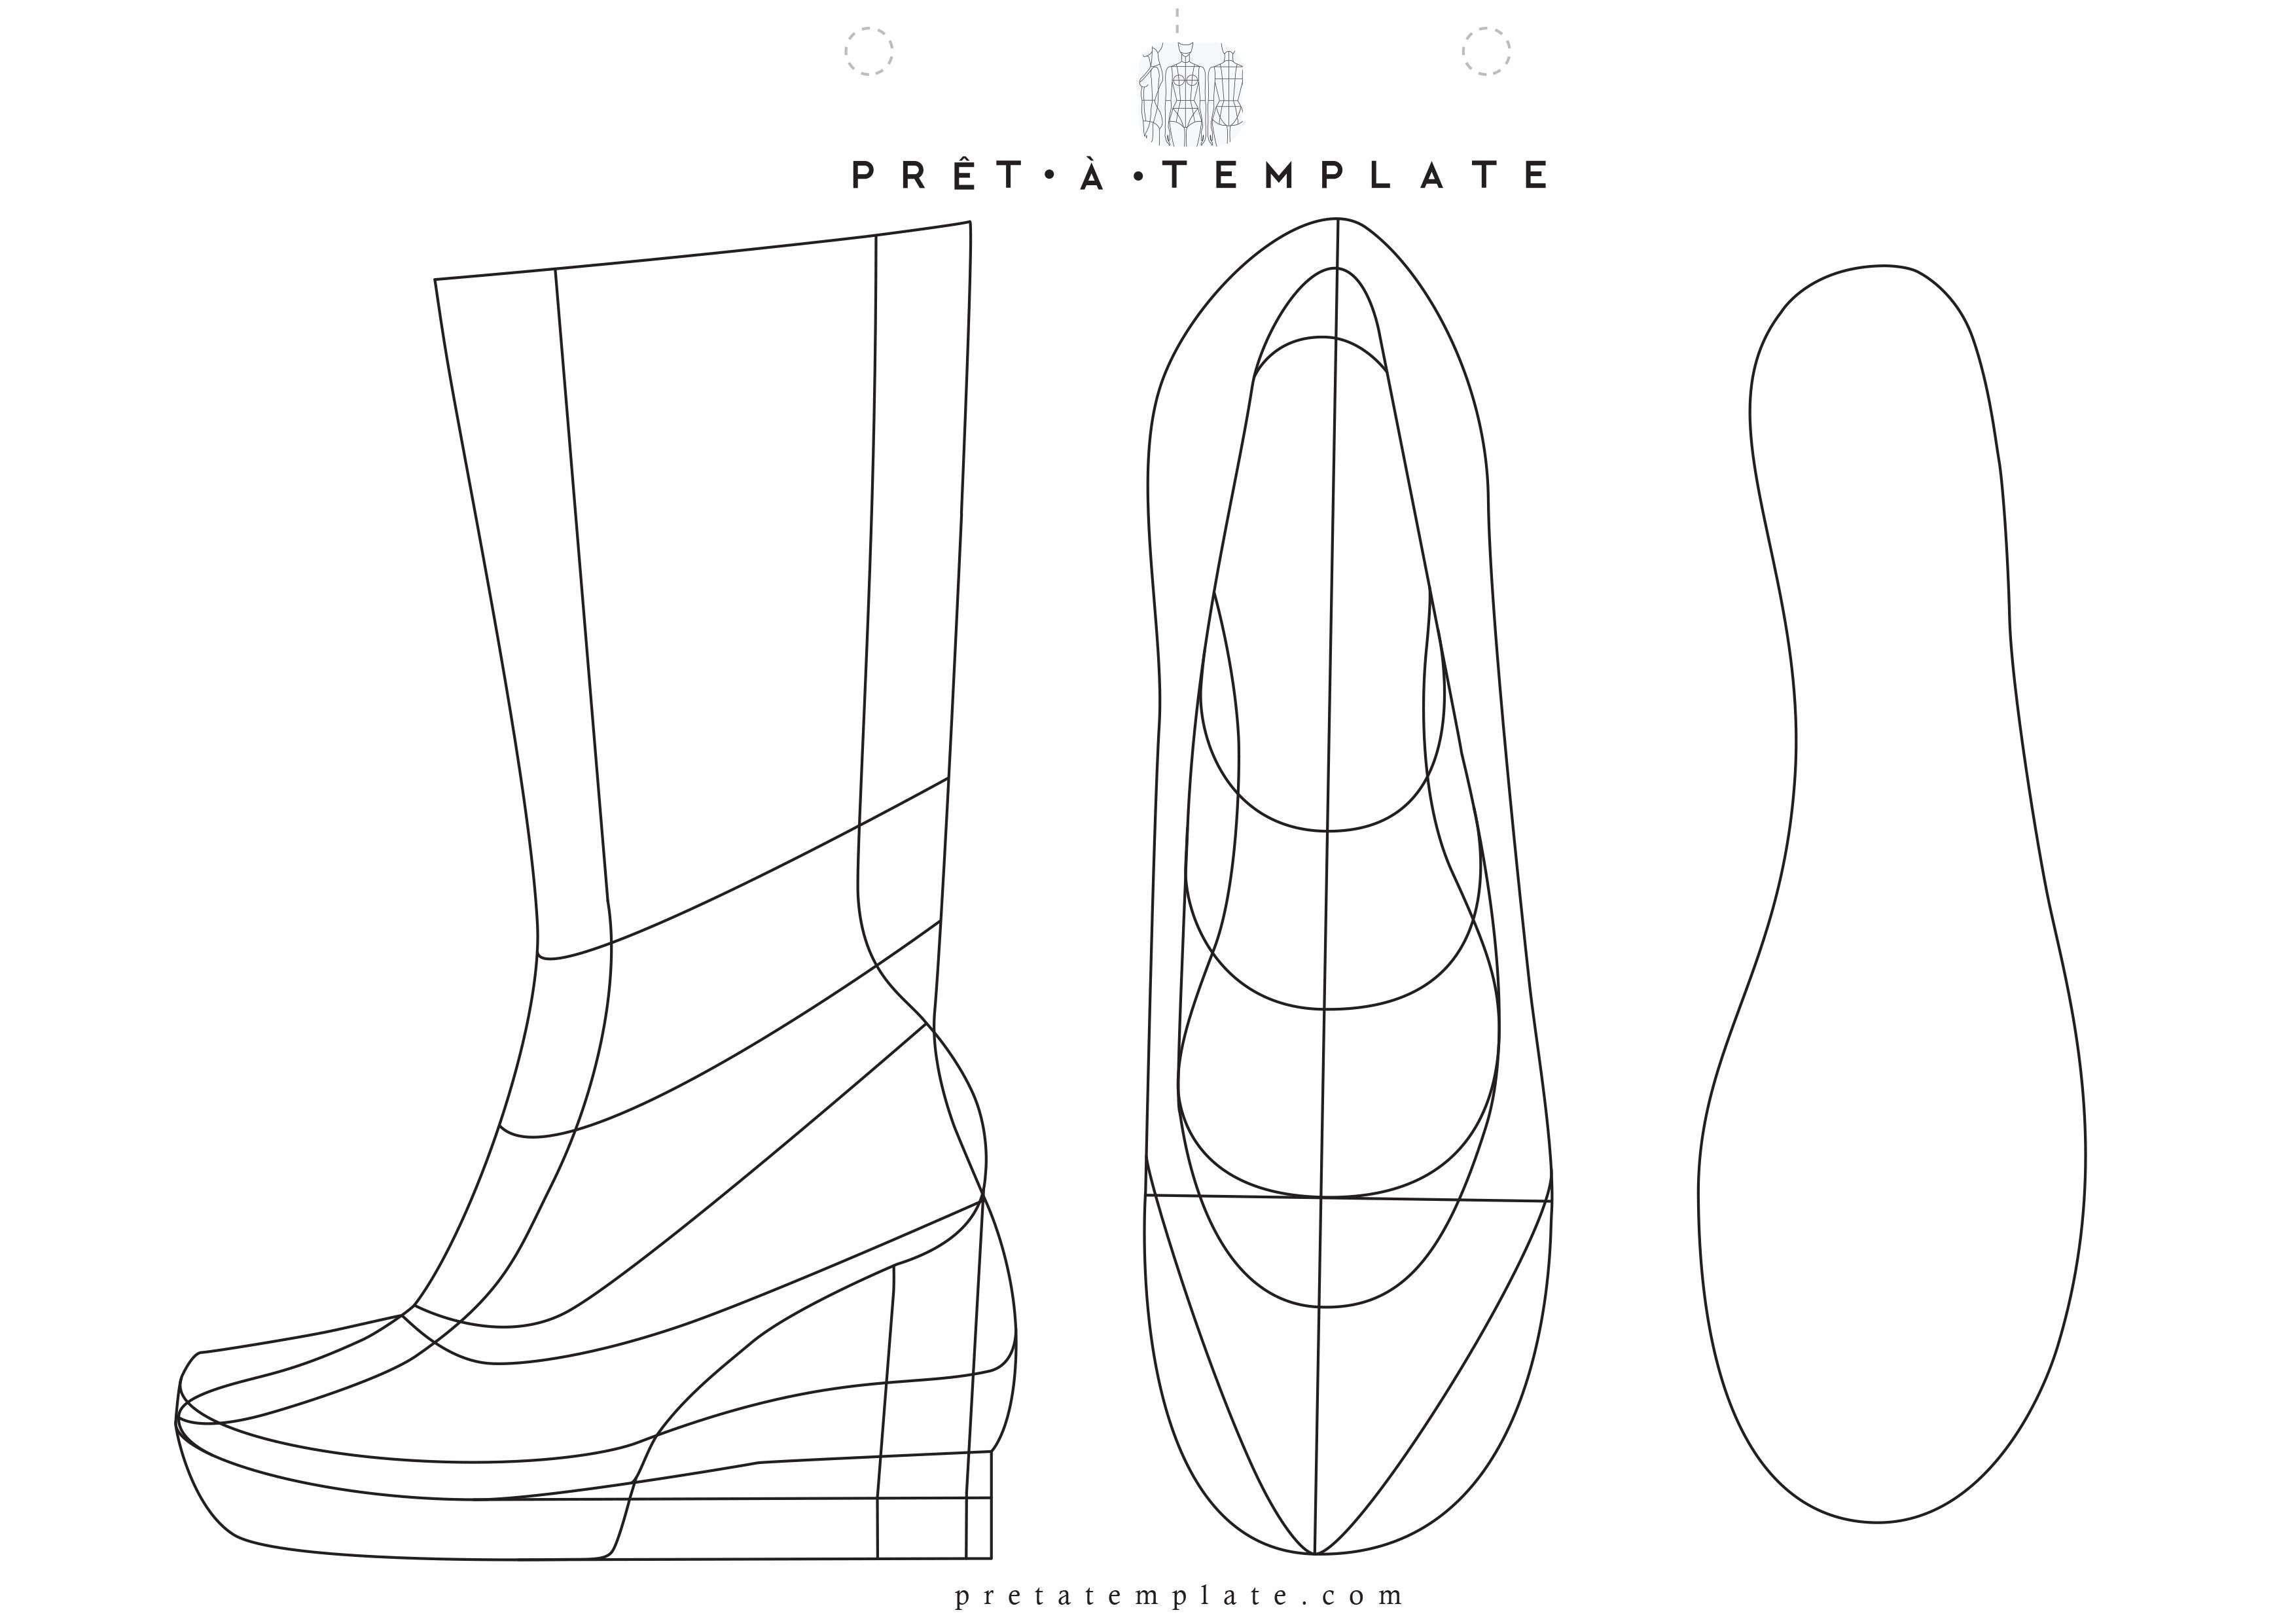 Shoe figure fashion template d i y your own fashion sketchbook shoe figure fashion template d i y your own fashion sketchbook maxwellsz